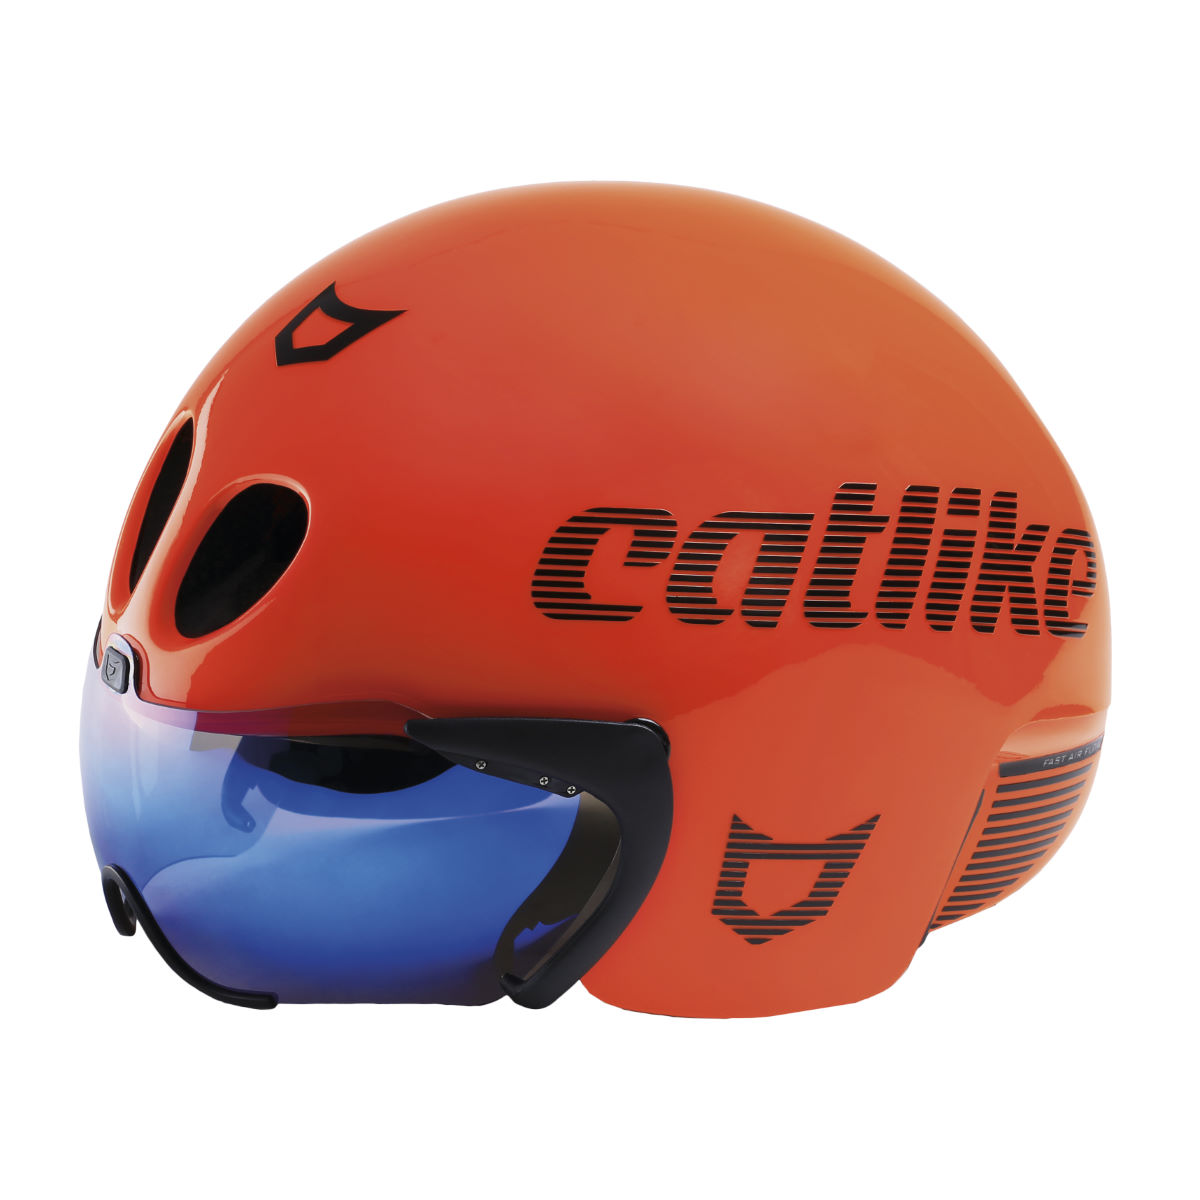 Casque de triathlon Catlike Rapid - Taille unique Orange Casques de route